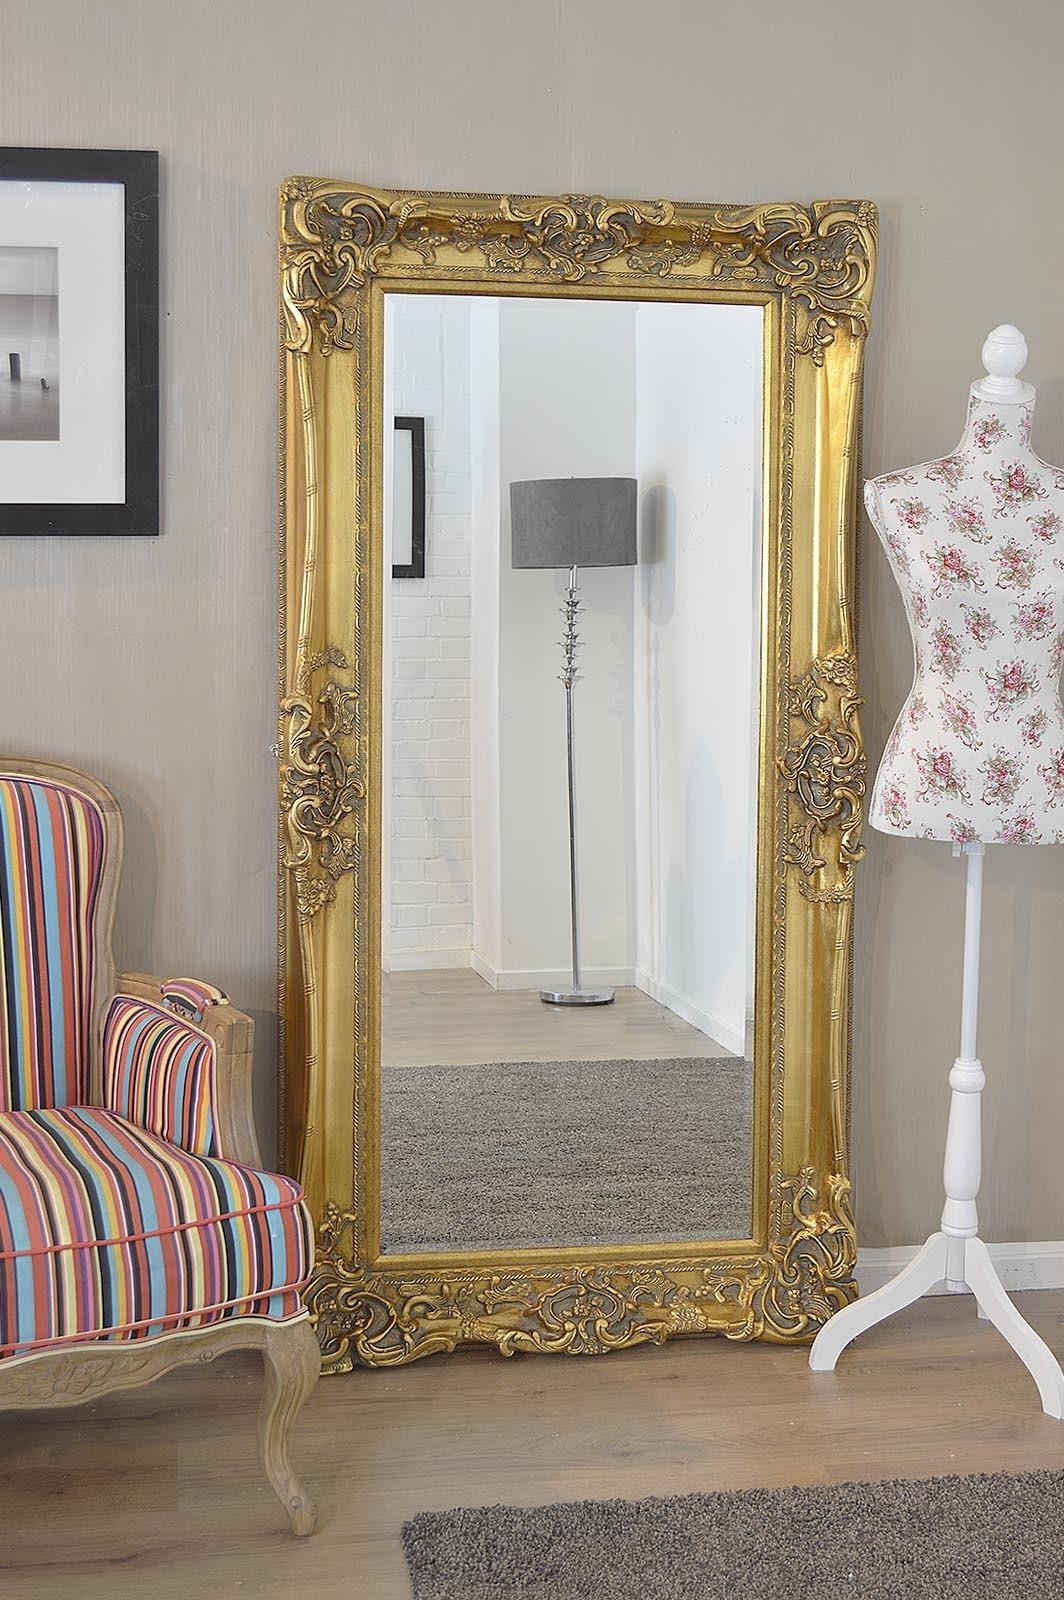 Full Length Mirrors For Sale 120 Awesome Exterior With Wall Within Extra Large Full Length Mirror (View 7 of 20)